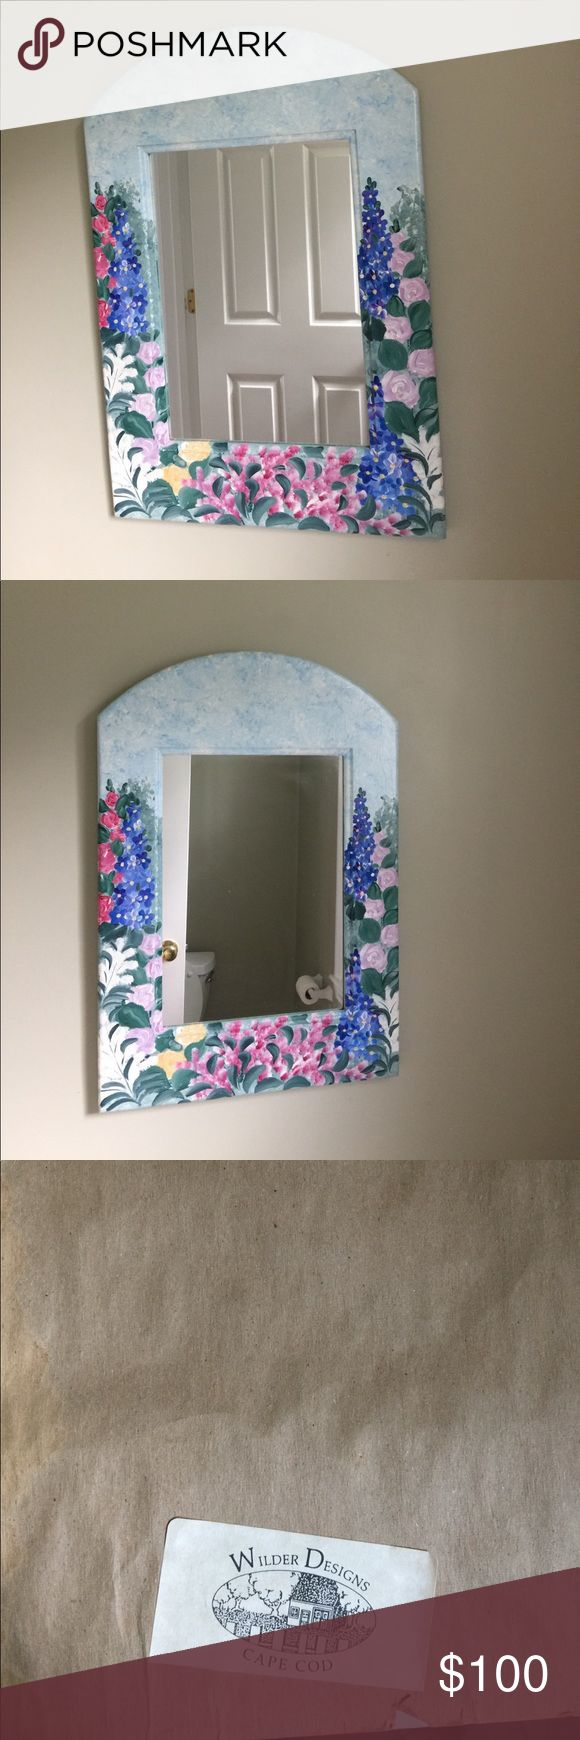 "Hand Painted Cape Code Wall Mirror Beautiful hand painted flowers on a light blue wall mirror.  Possible flowers: Roses, lupine, Dblfinien. From Wilder Designs of Cape Code. Dimensions 15 1/2"" x 22"" Other"